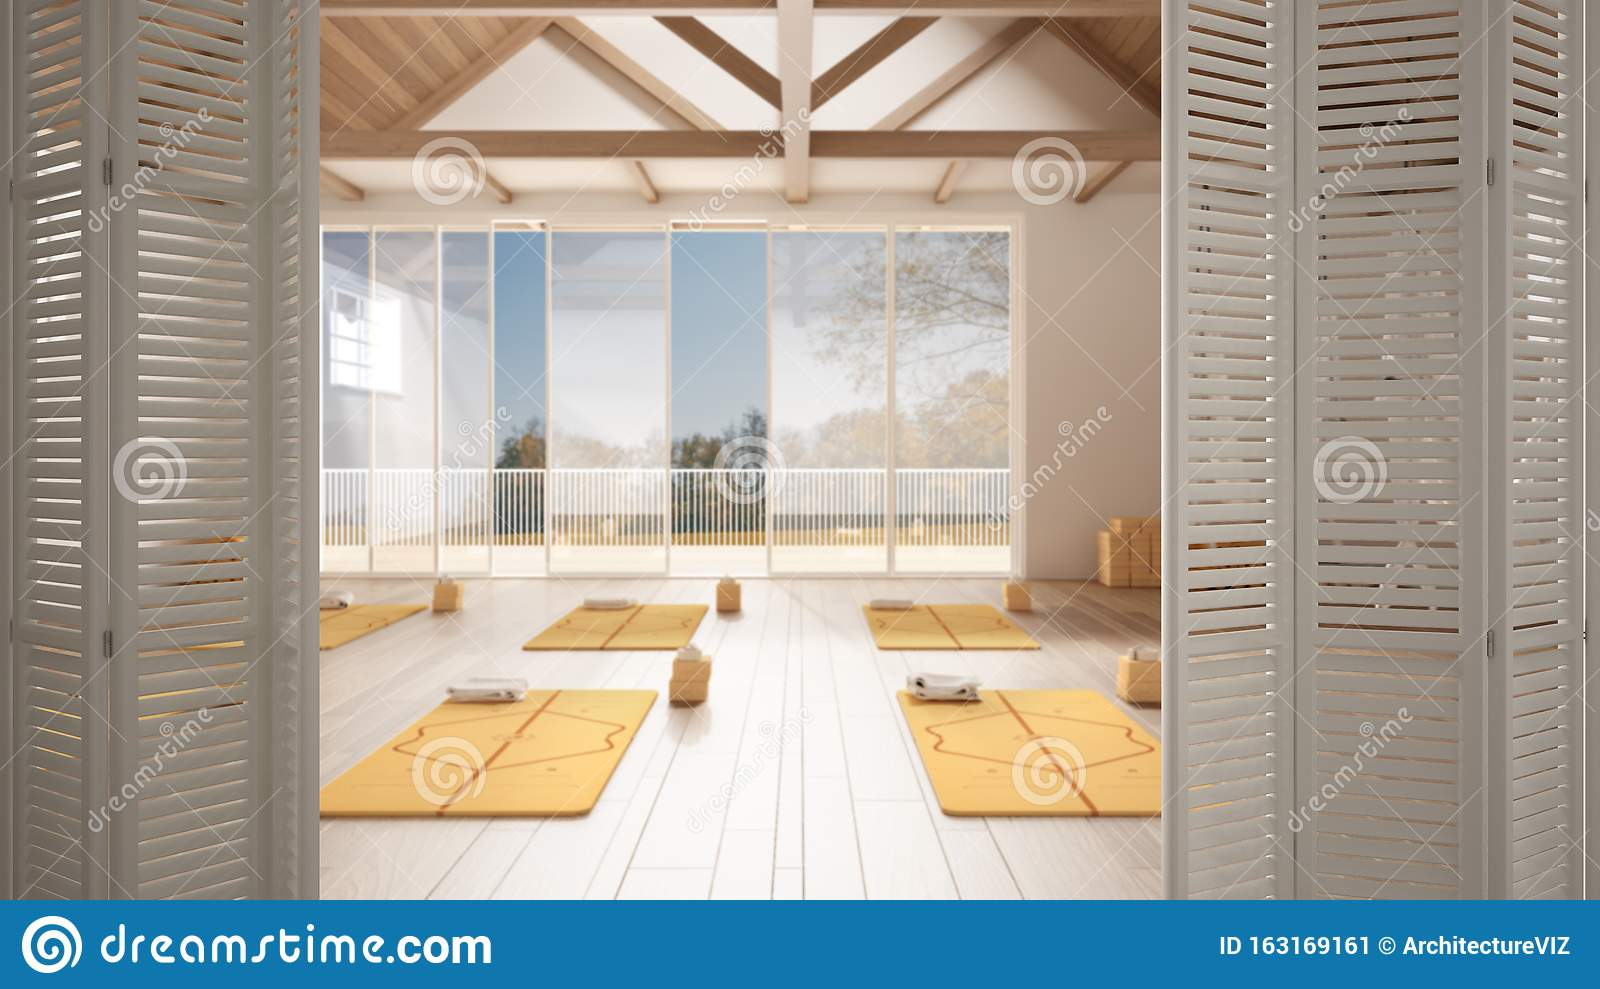 White Folding Door Opening On Empty Yoga Studio Interior Design Minimal Open Space With Mats And Accessories Wooden Roof Ready Stock Image Image Of Background Mock 163169161